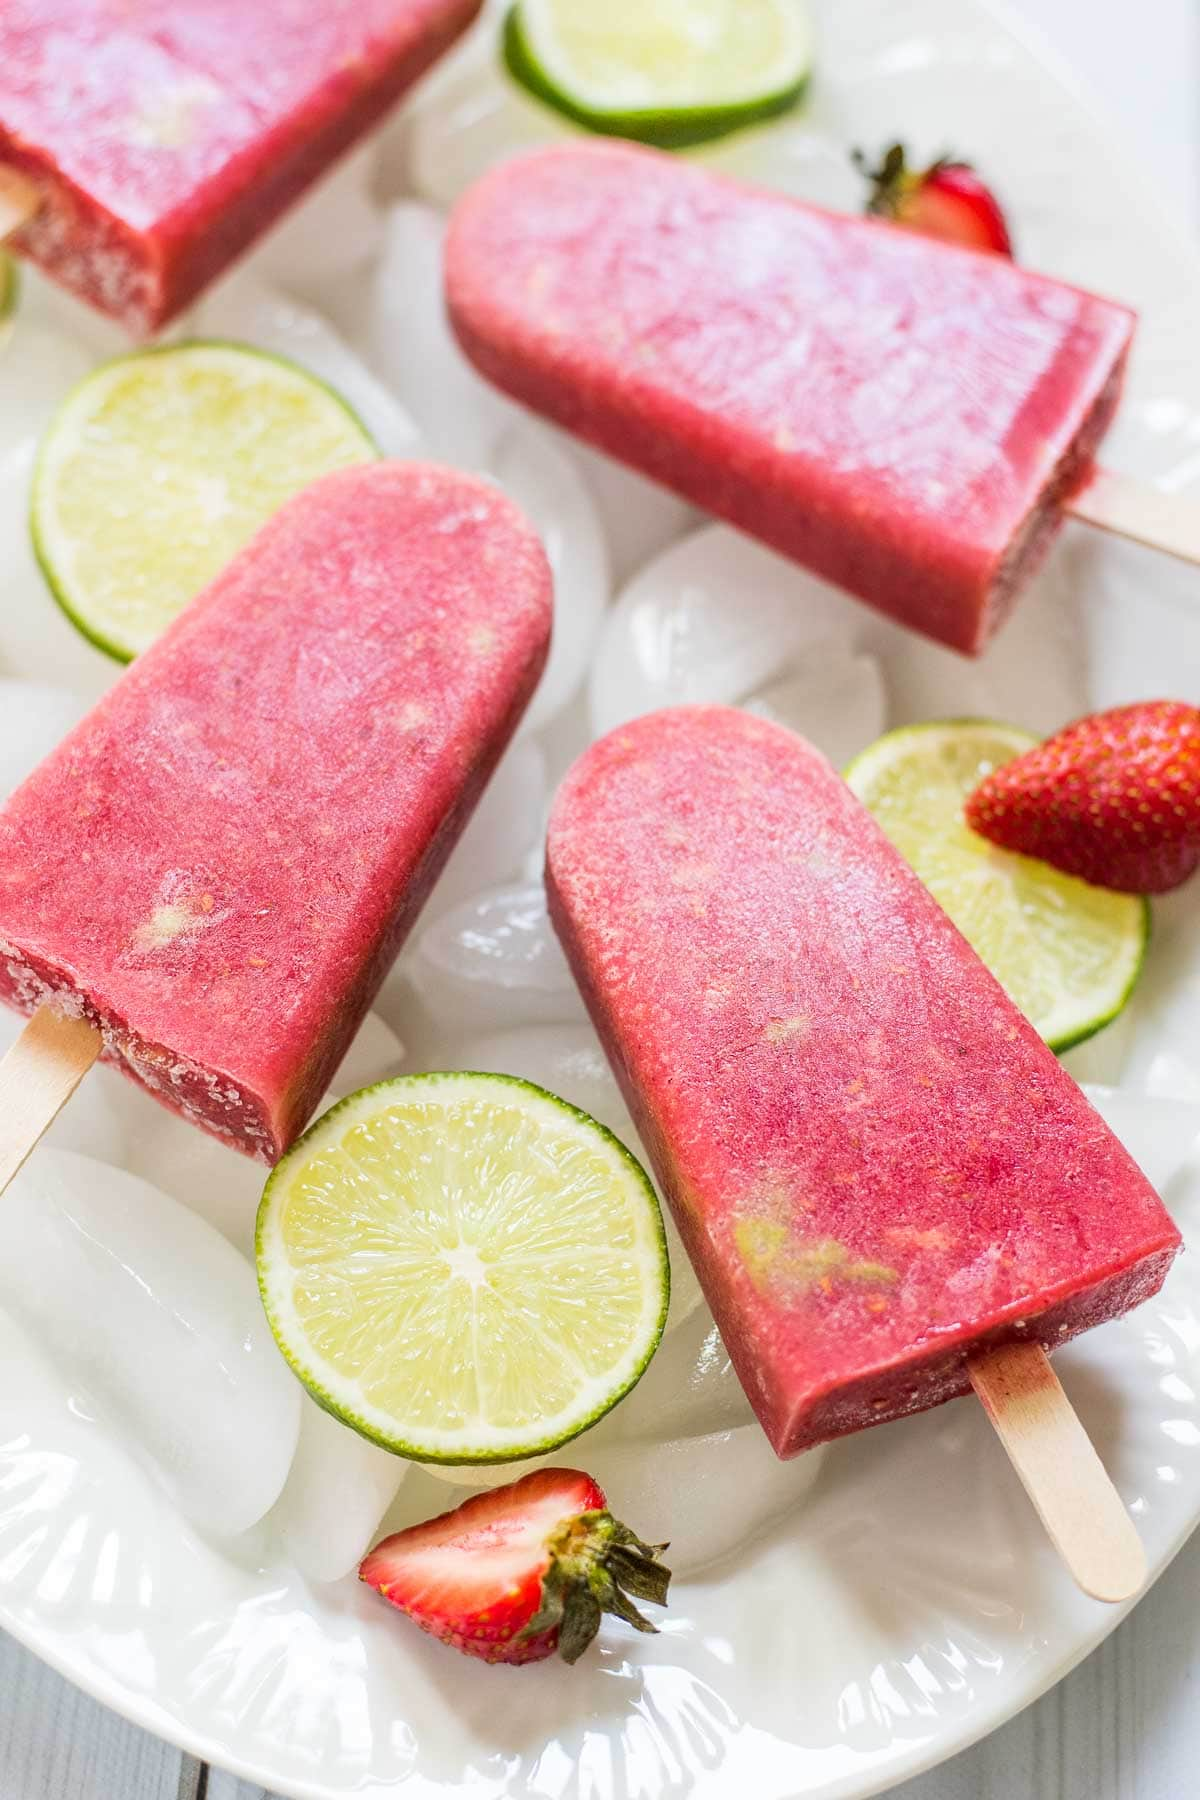 Berry Avocado Popsicles are packed with fresh berries, lime, and creamy avocado for an indulgent but healthy treat!